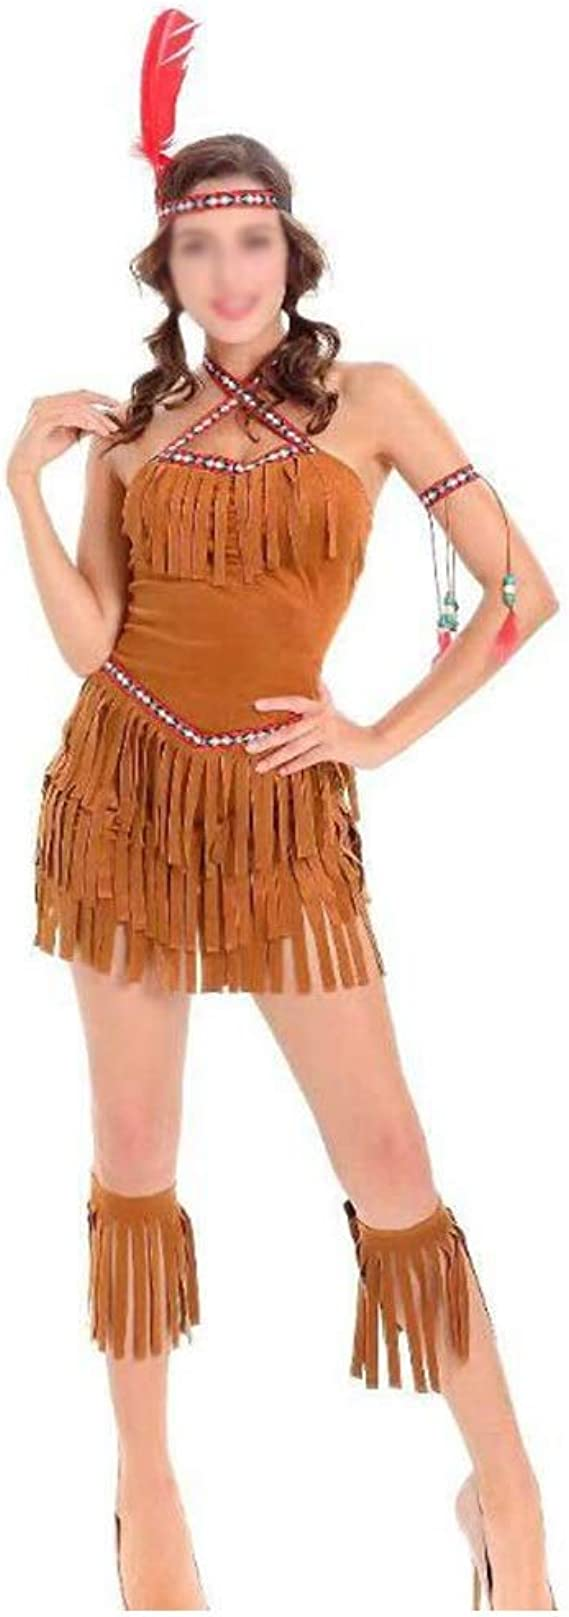 NO BRAND De Halloween Disfraces de Halloween for mujer tribu india ...